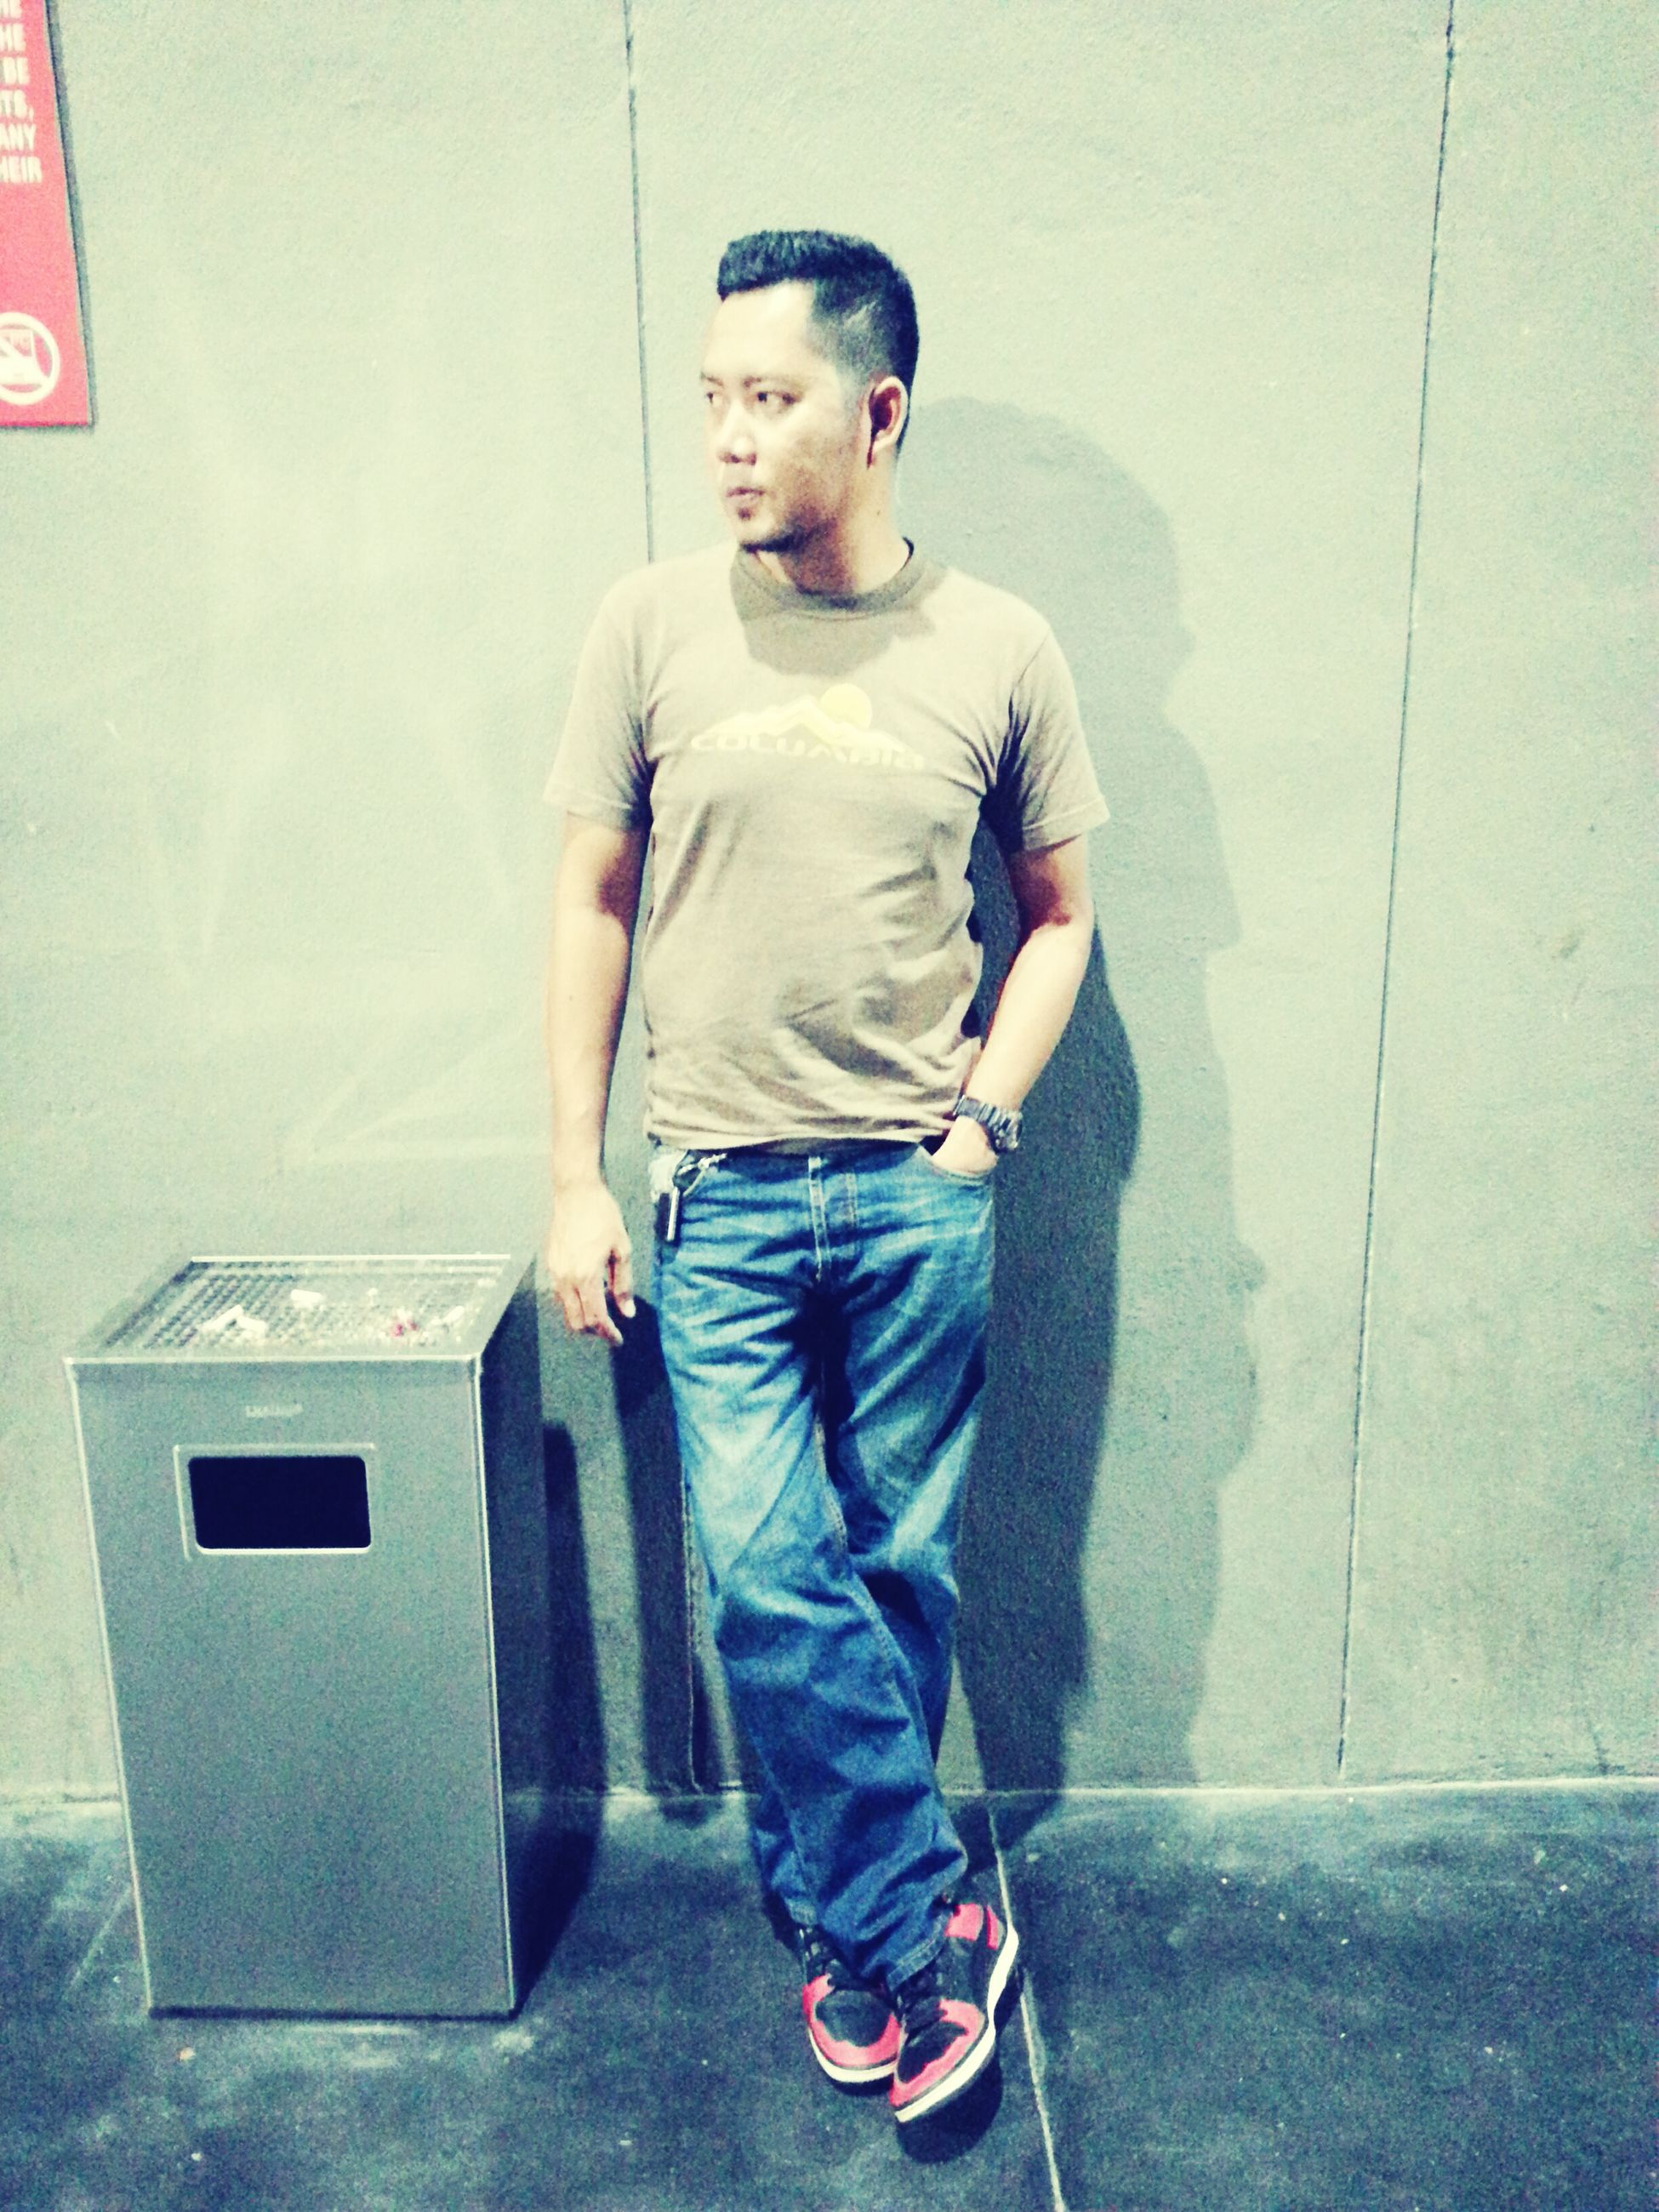 casual clothing, full length, lifestyles, standing, person, wall - building feature, front view, built structure, architecture, holding, leisure activity, indoors, portrait, looking at camera, three quarter length, young adult, young men, wall